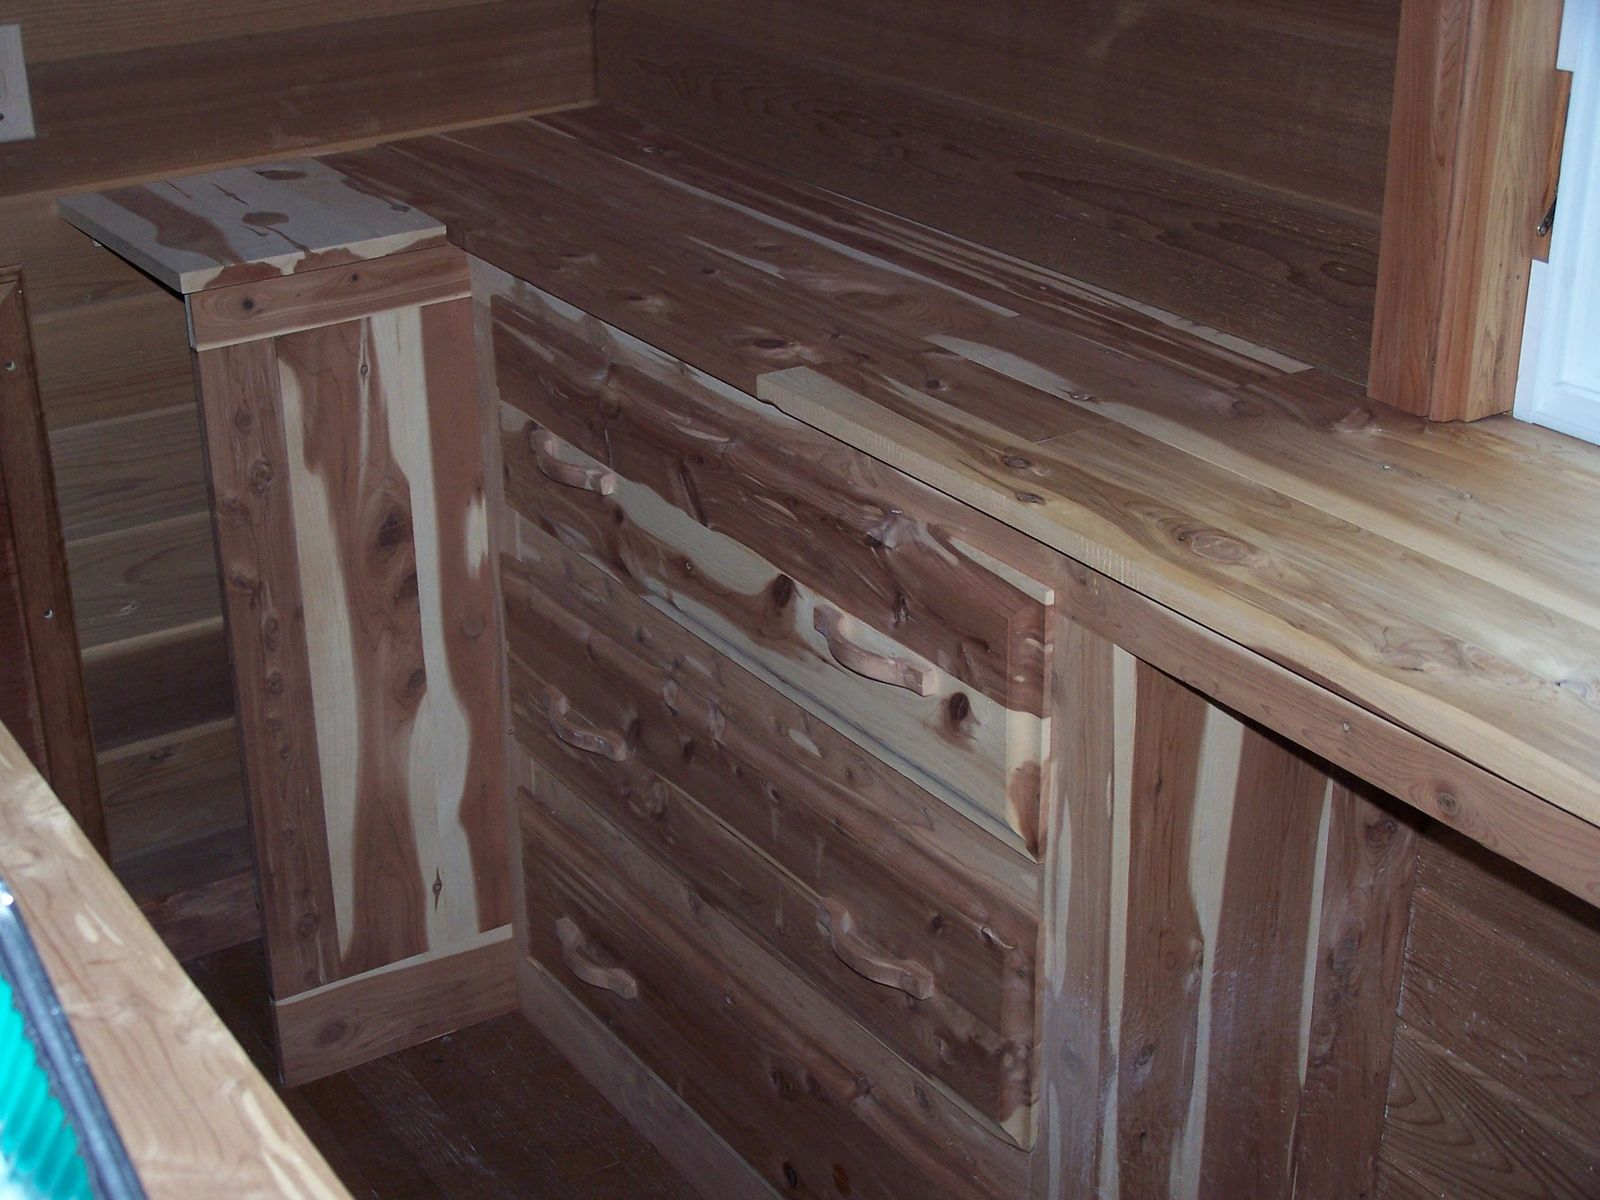 liner hardwood aromatic softwood closets p cedarsafe cedar natural the boards closet planks